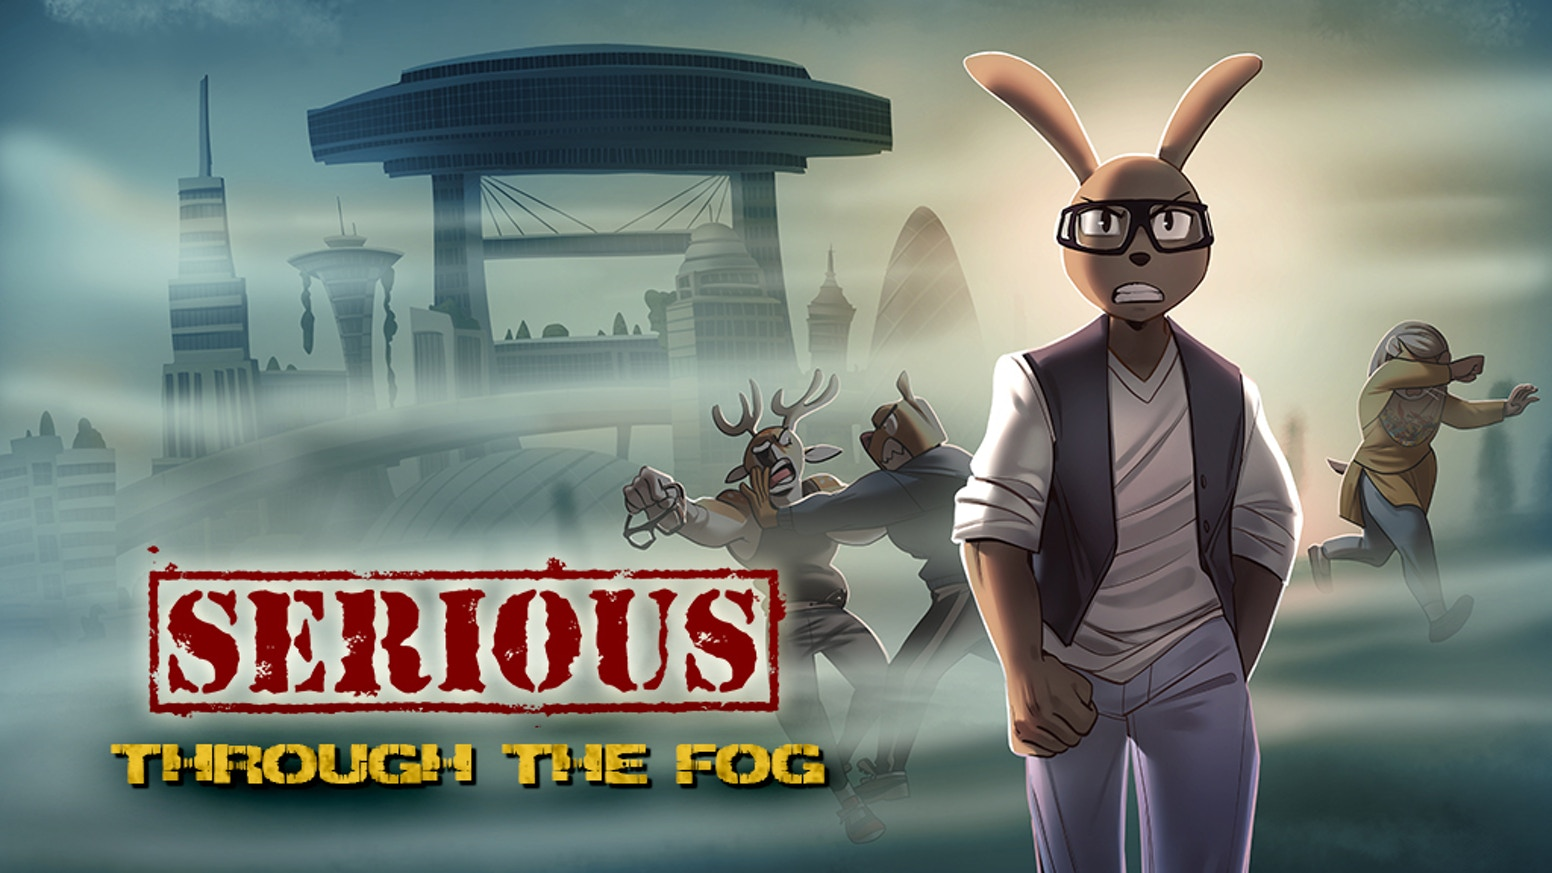 In a world struck by a pandemic, a young rabbit must navigate fear, chaos and self doubt and lead his friends to their dreams.